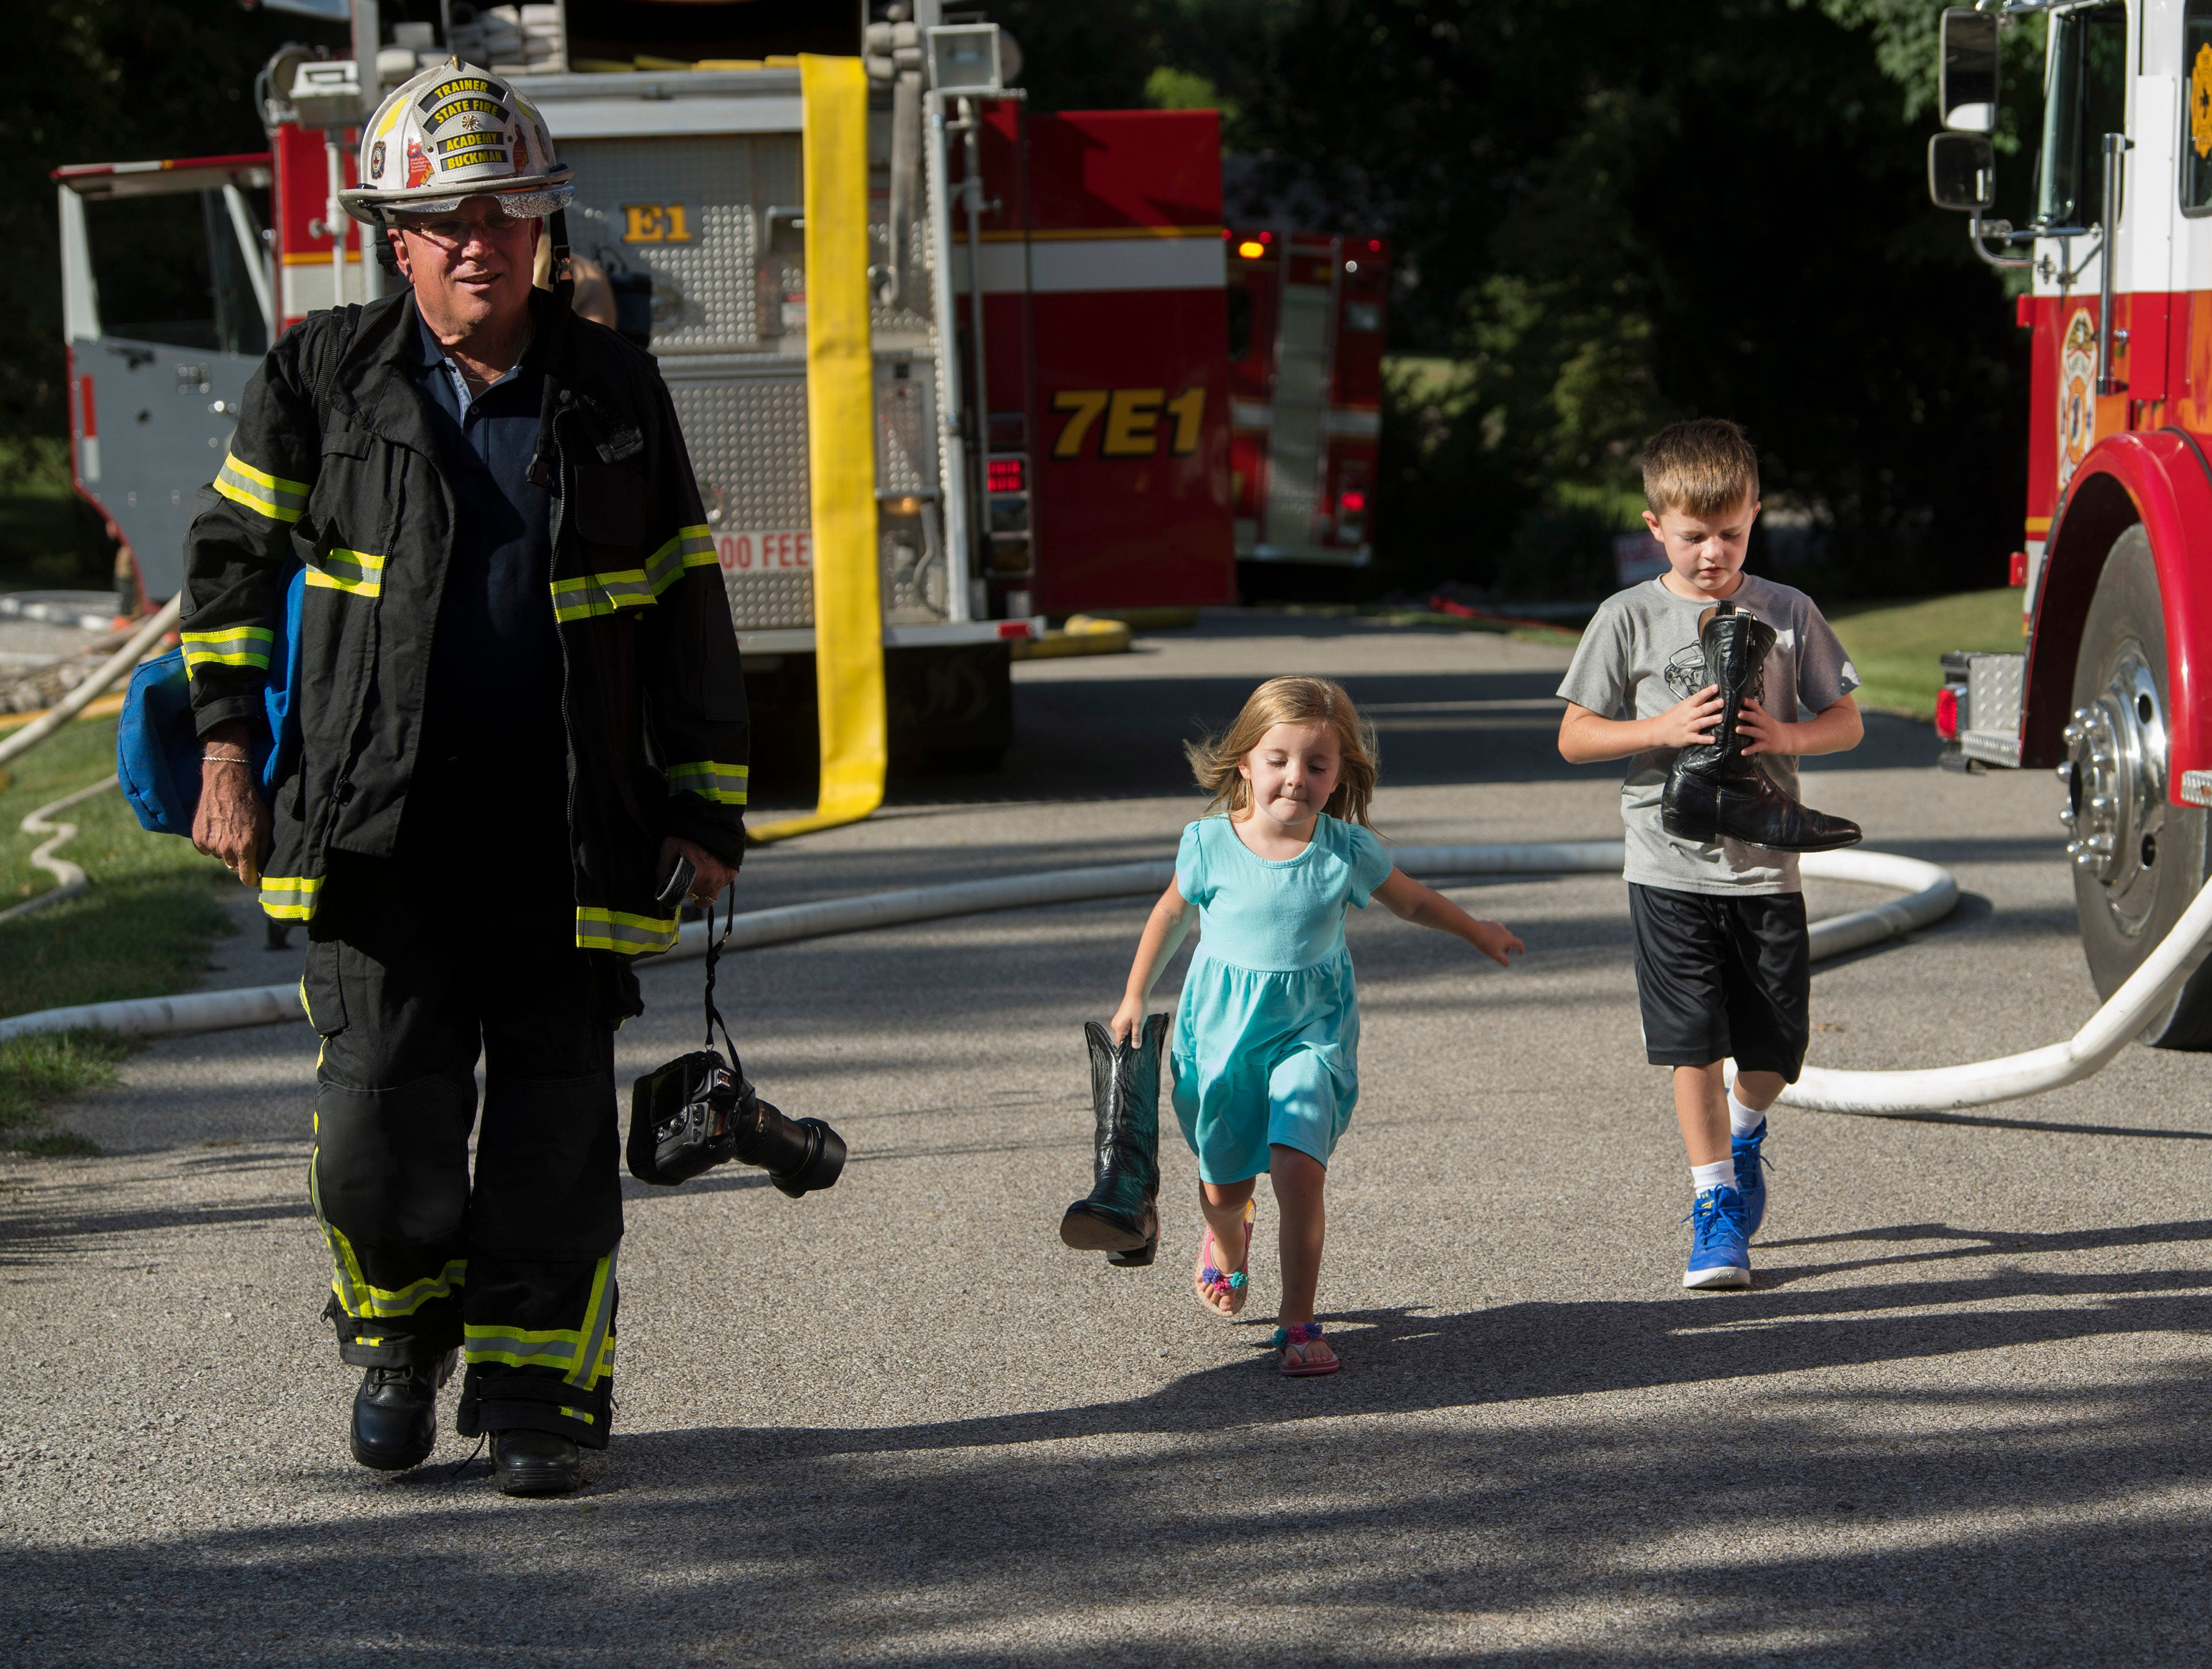 "John Buckman, left, a chief retired after 35 years with the German Township Fire Department, heads back to his vehicle with his grandkids, Kate, 5, and Nicholas Wood, 8, hauling his cowboy boots from a fire at 630 Marlene Drive in Evansville Tuesday evening. ""We were at the bank when I heard the second alarm fire,"" Buckman said of their delayed date at McDonald's for ice cream. ""I said, 'Kids, we're going to go see the fire first. See if we can help.' It's the life of a volunteer firefighter,"" he continued. ""You drop what you're doing and go help people."""